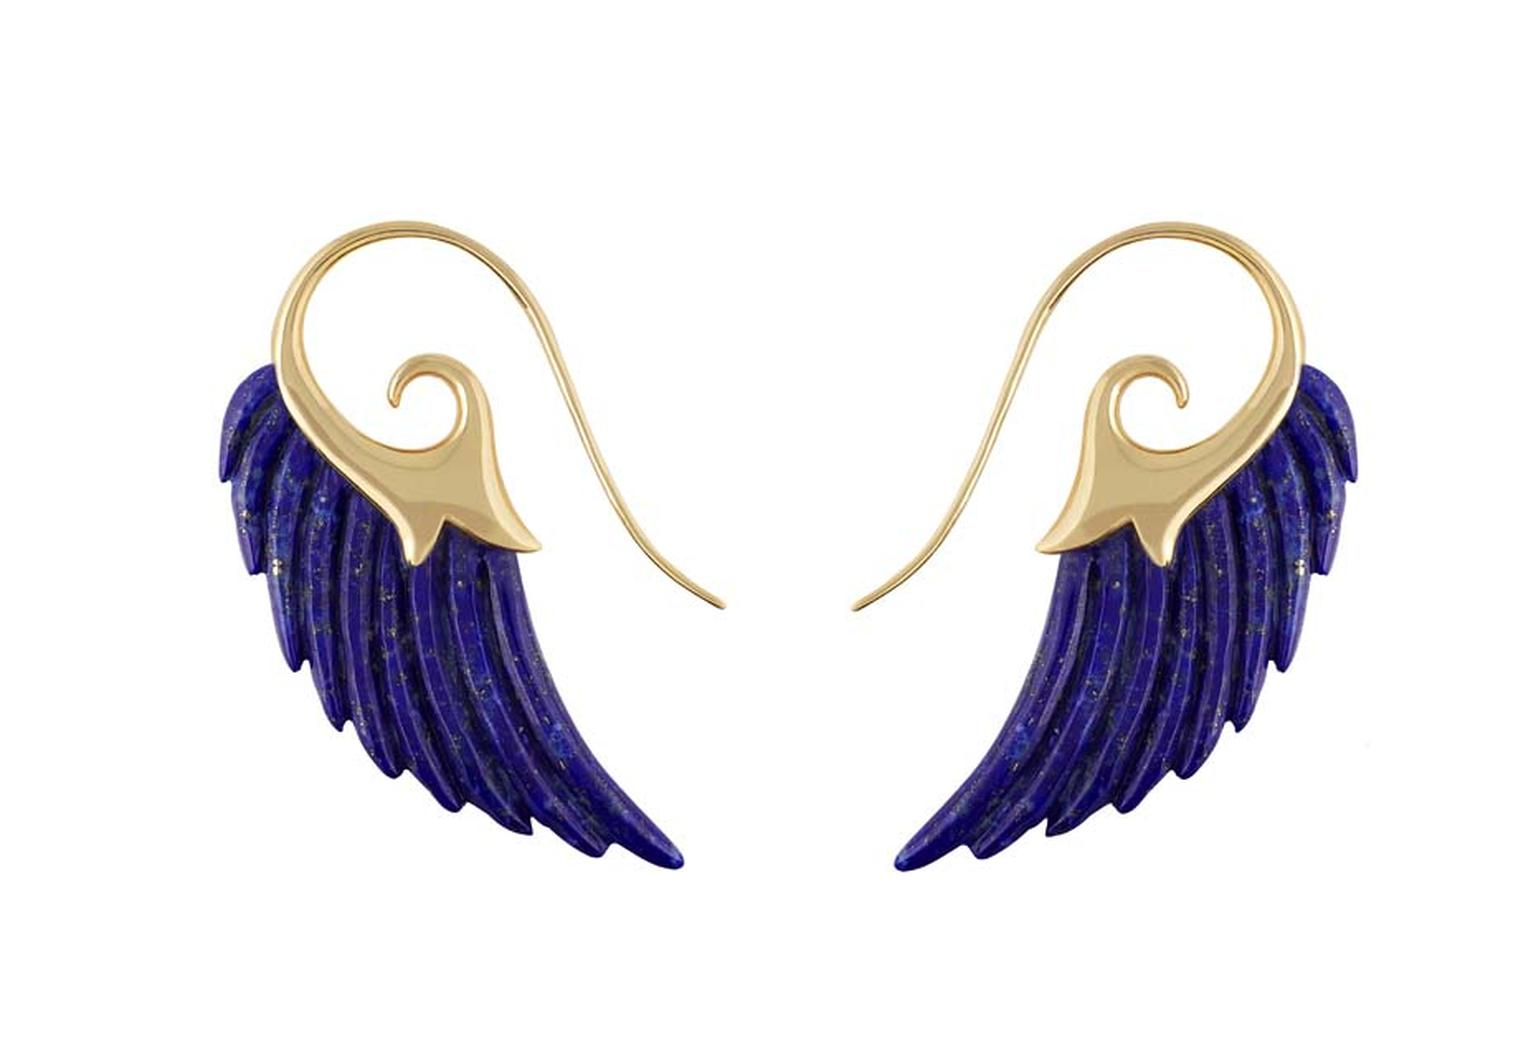 Noor Fares Fly Me to the Moon collection lapis lazuli earrings with internal gold flecks.